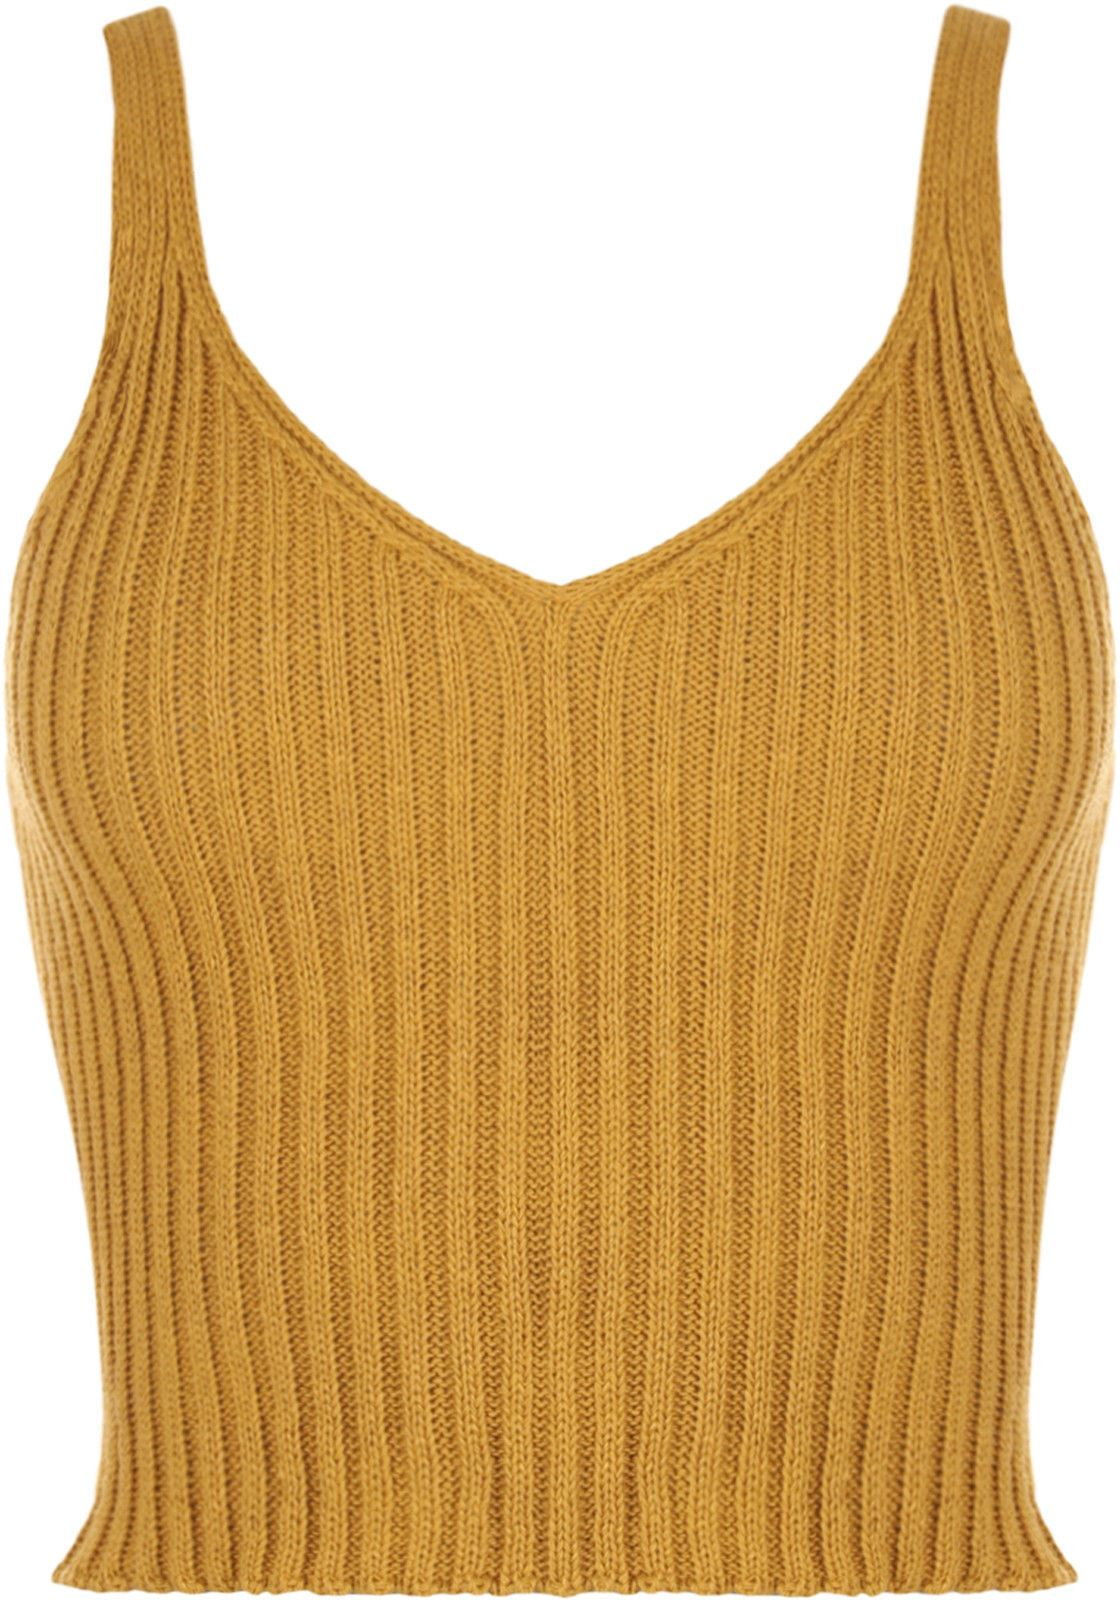 New Women Ladies V Neck Knitted Ribbed Plain Bralet Crop Top Sleeveless Vest ...